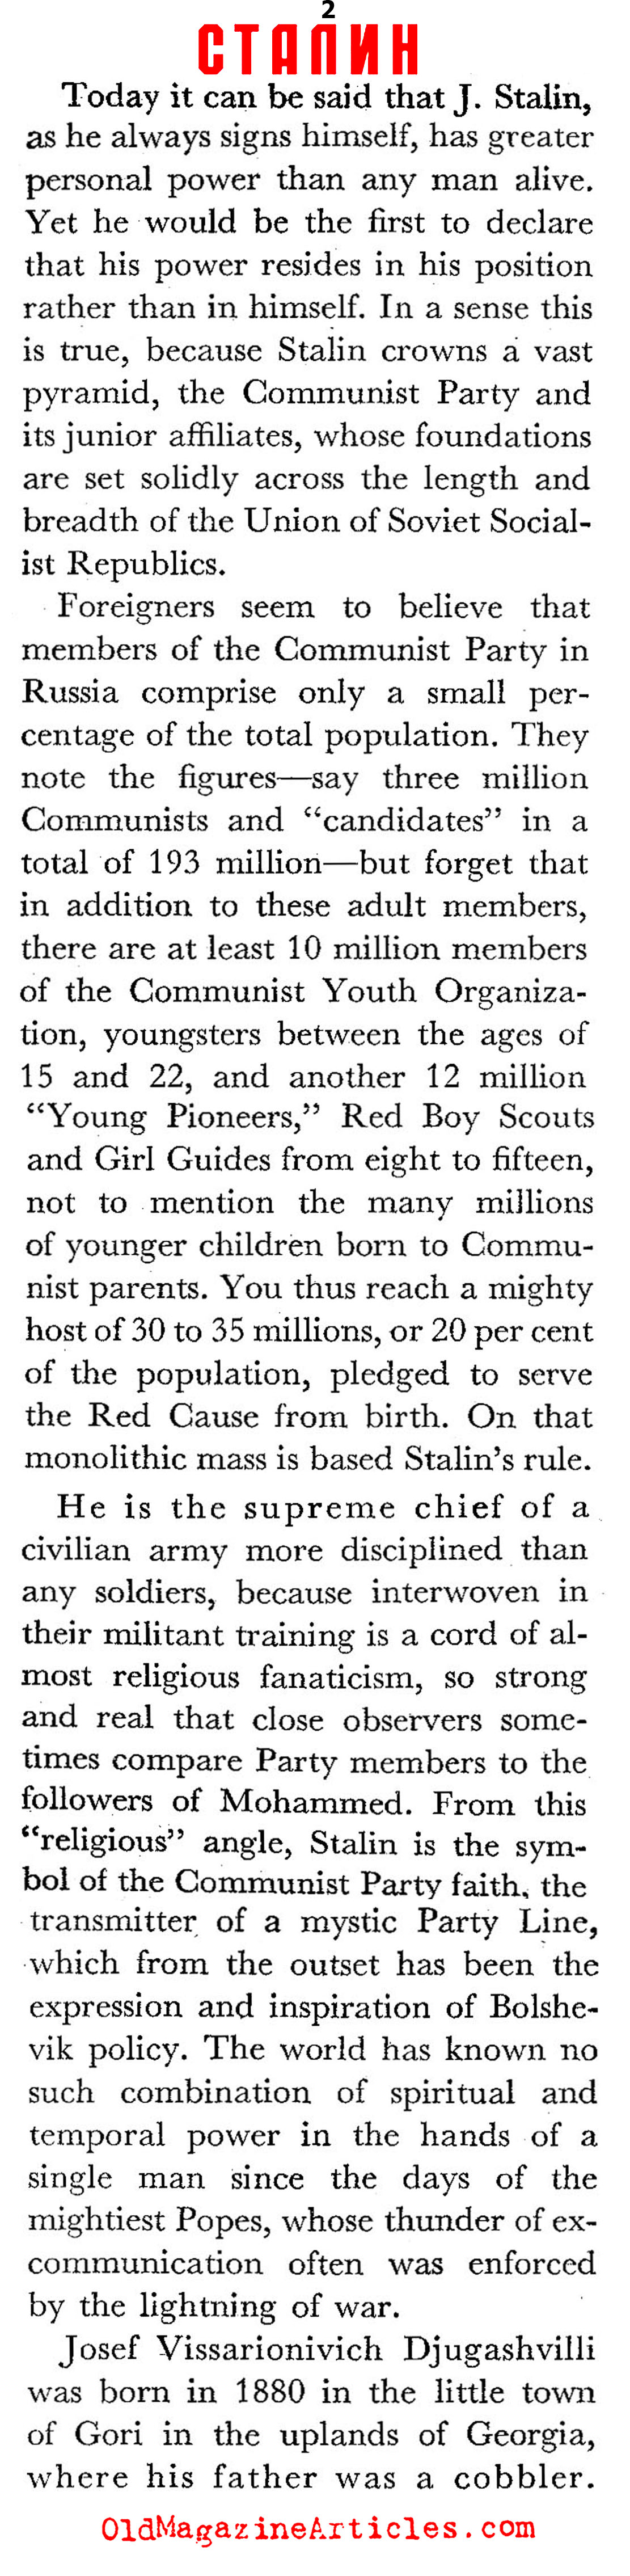 The Optimist's Joseph Stalin (Coronet Magazine, 1943)